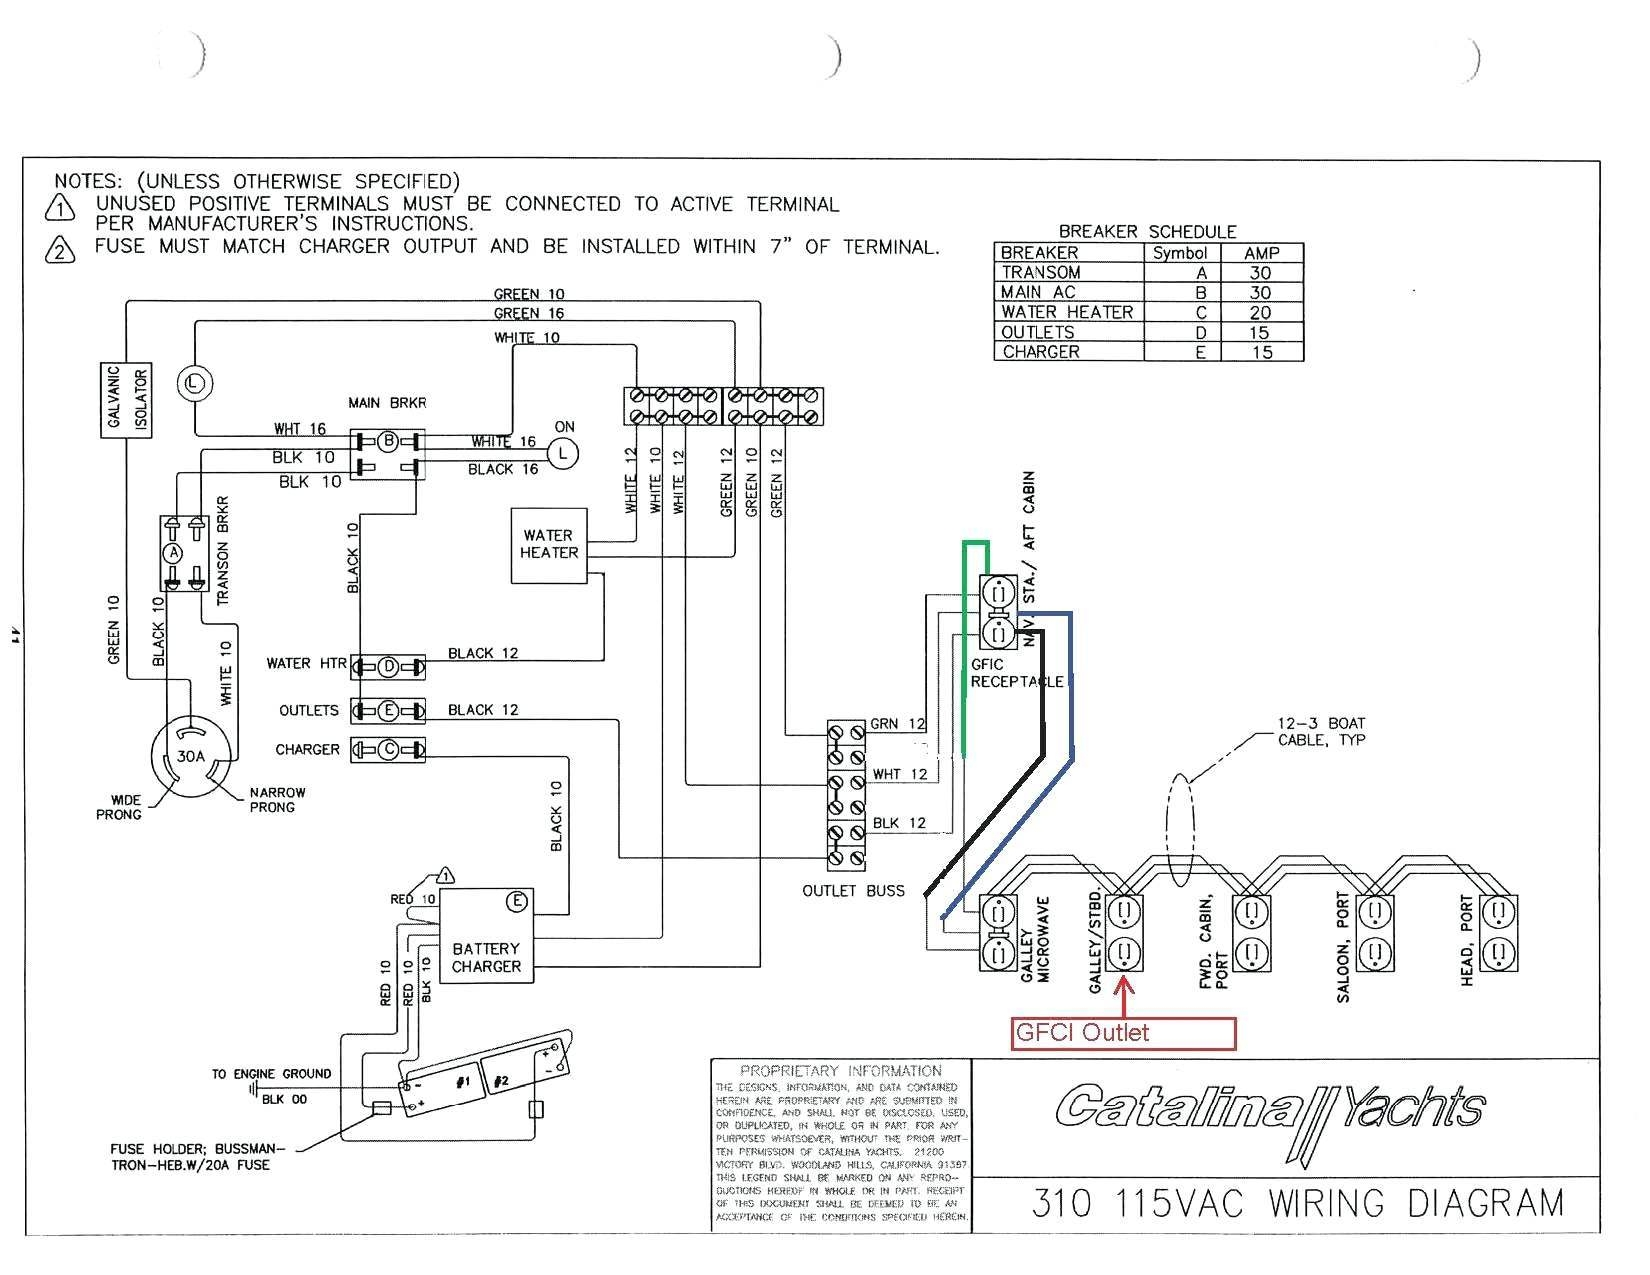 hight resolution of hk42fz011 wiring diagram hk42fz009 wiring diagram free vehicle wiring diagrams u2022 rh stripgore control board